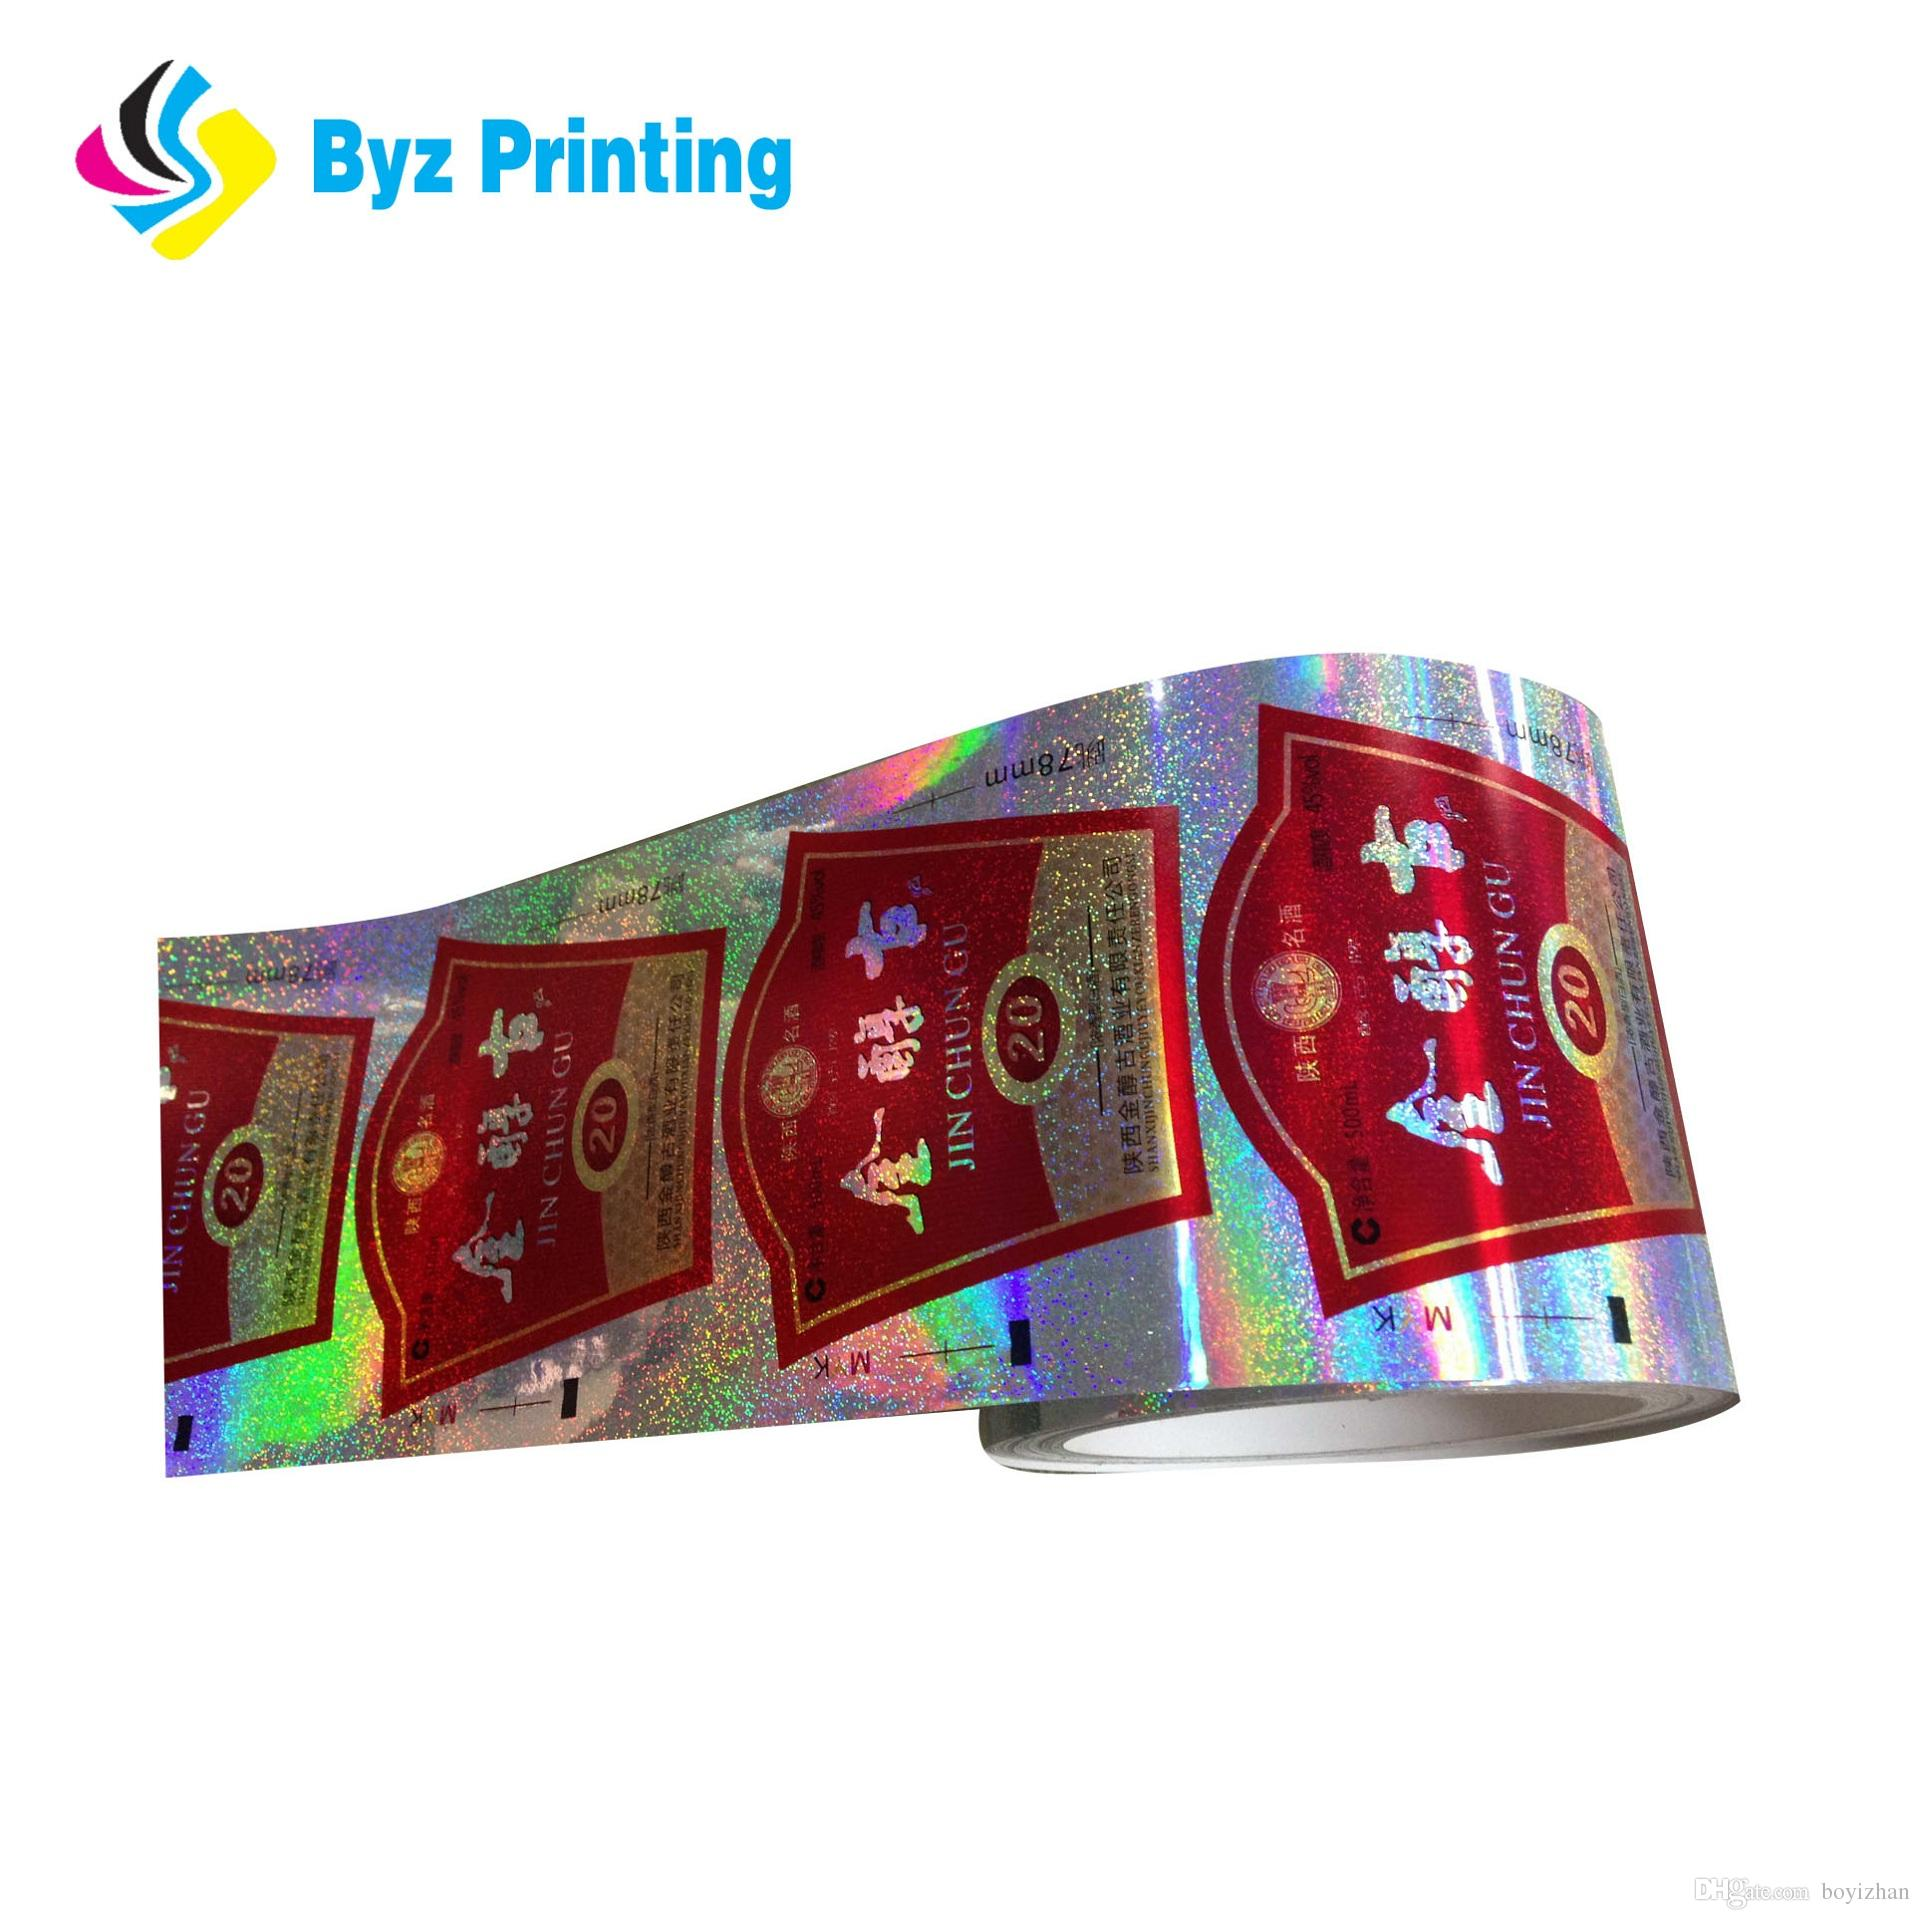 Hot sale packaging adhesive sticker printing custom printed vinyl labels reflective sticker printing packaging label printed custom printed labels online